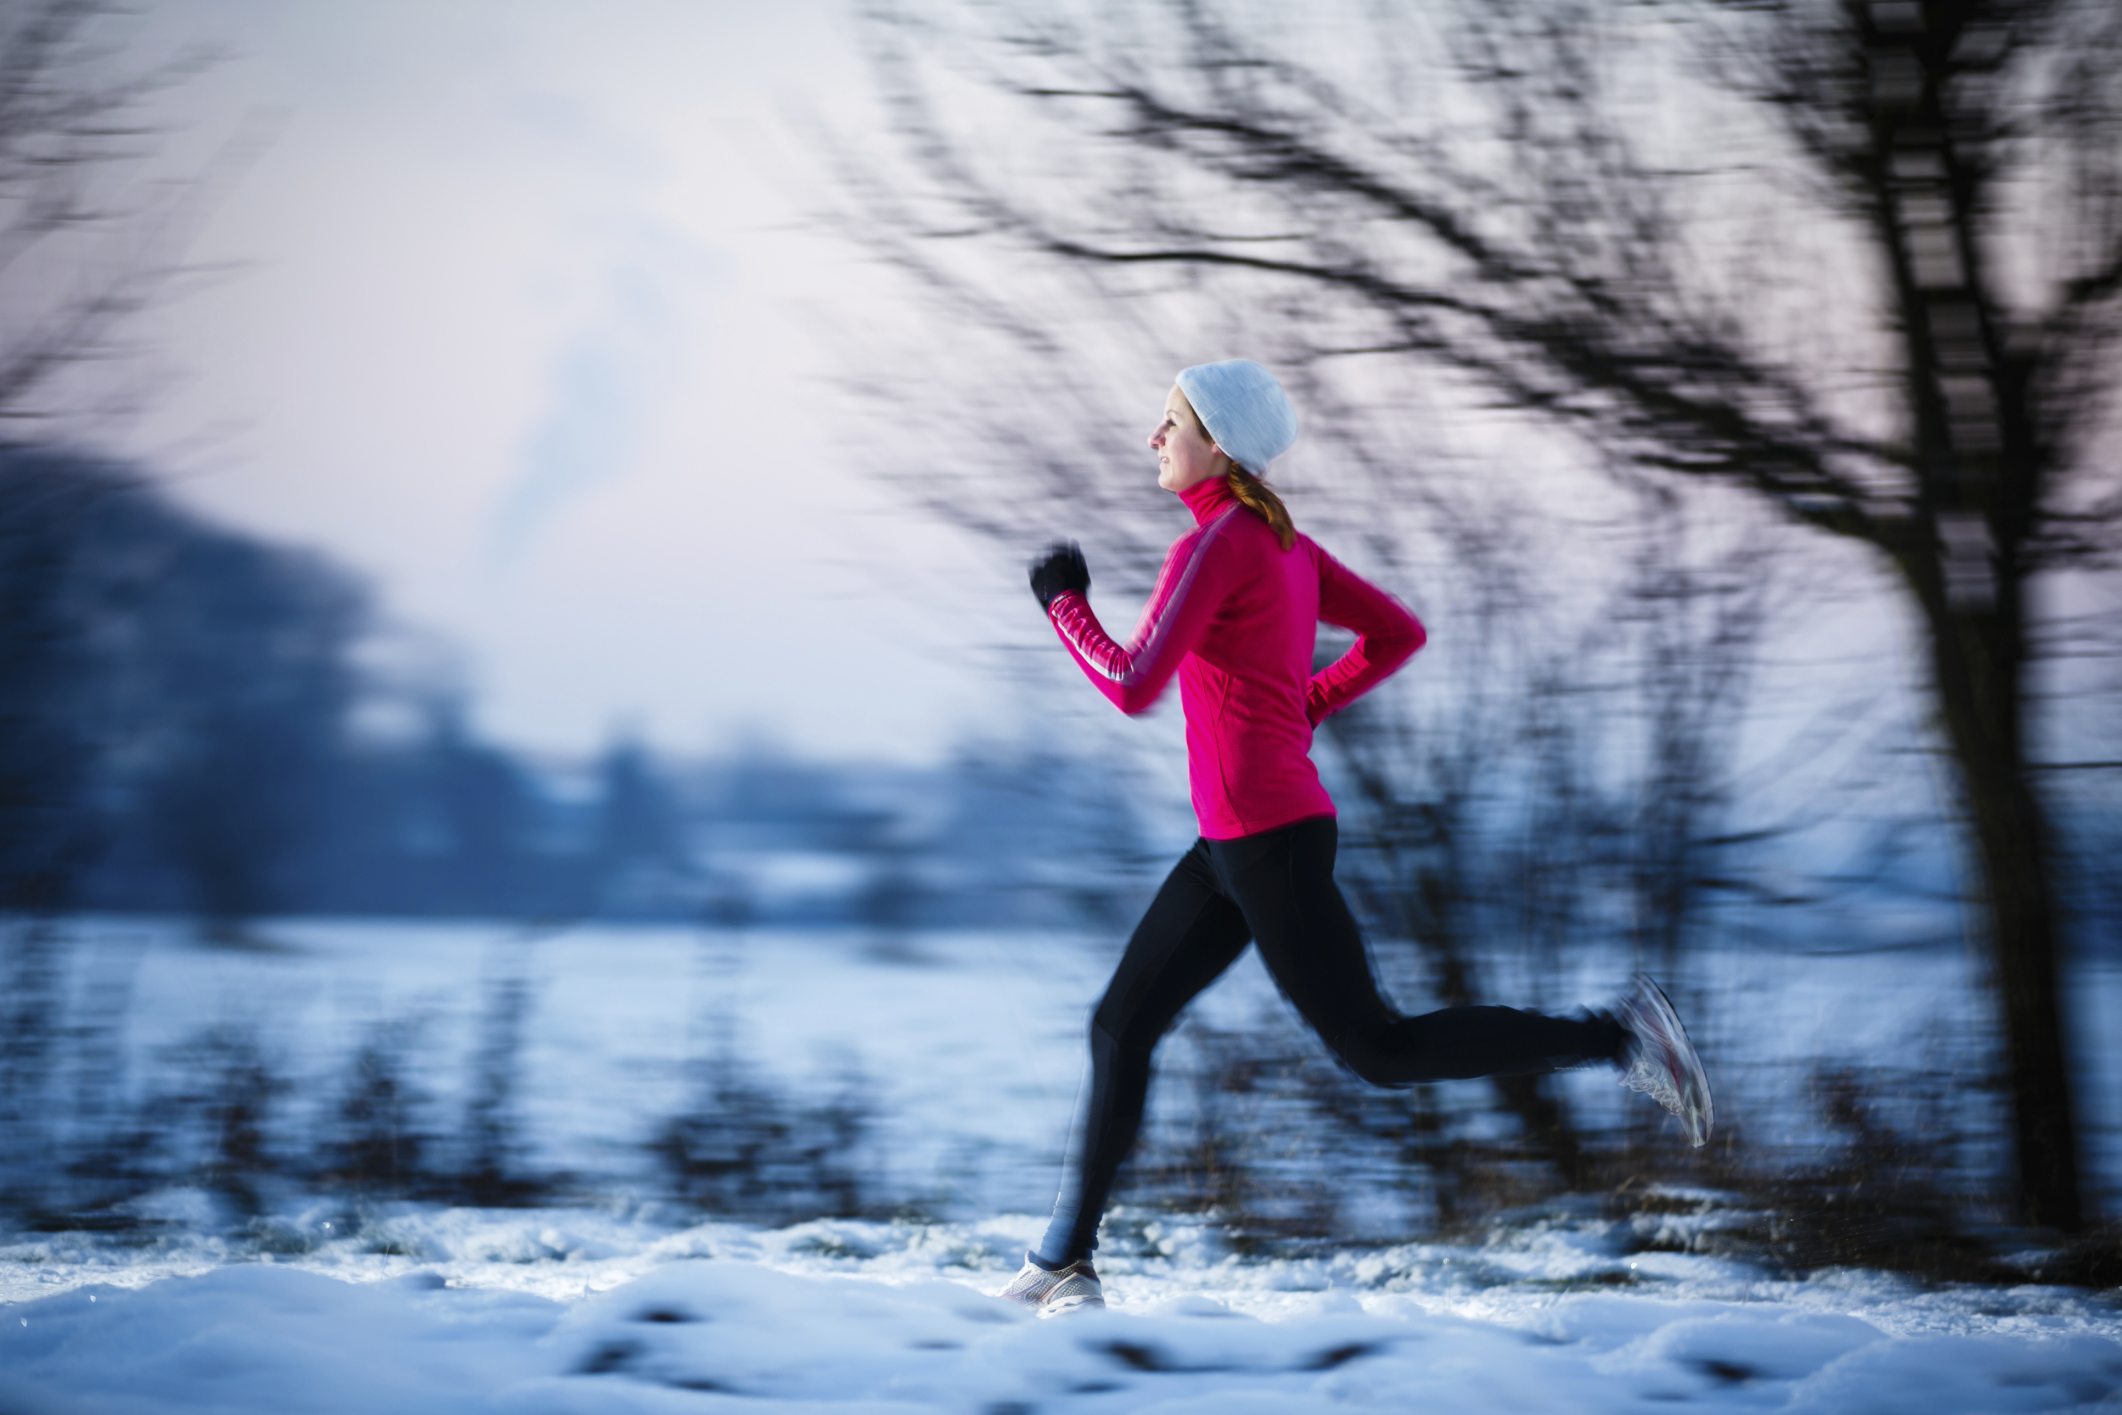 How about taking a run in the snow? Join one of the winter running eventsBiegać można również na śniegu. Ruszaj na zimowe zawody..